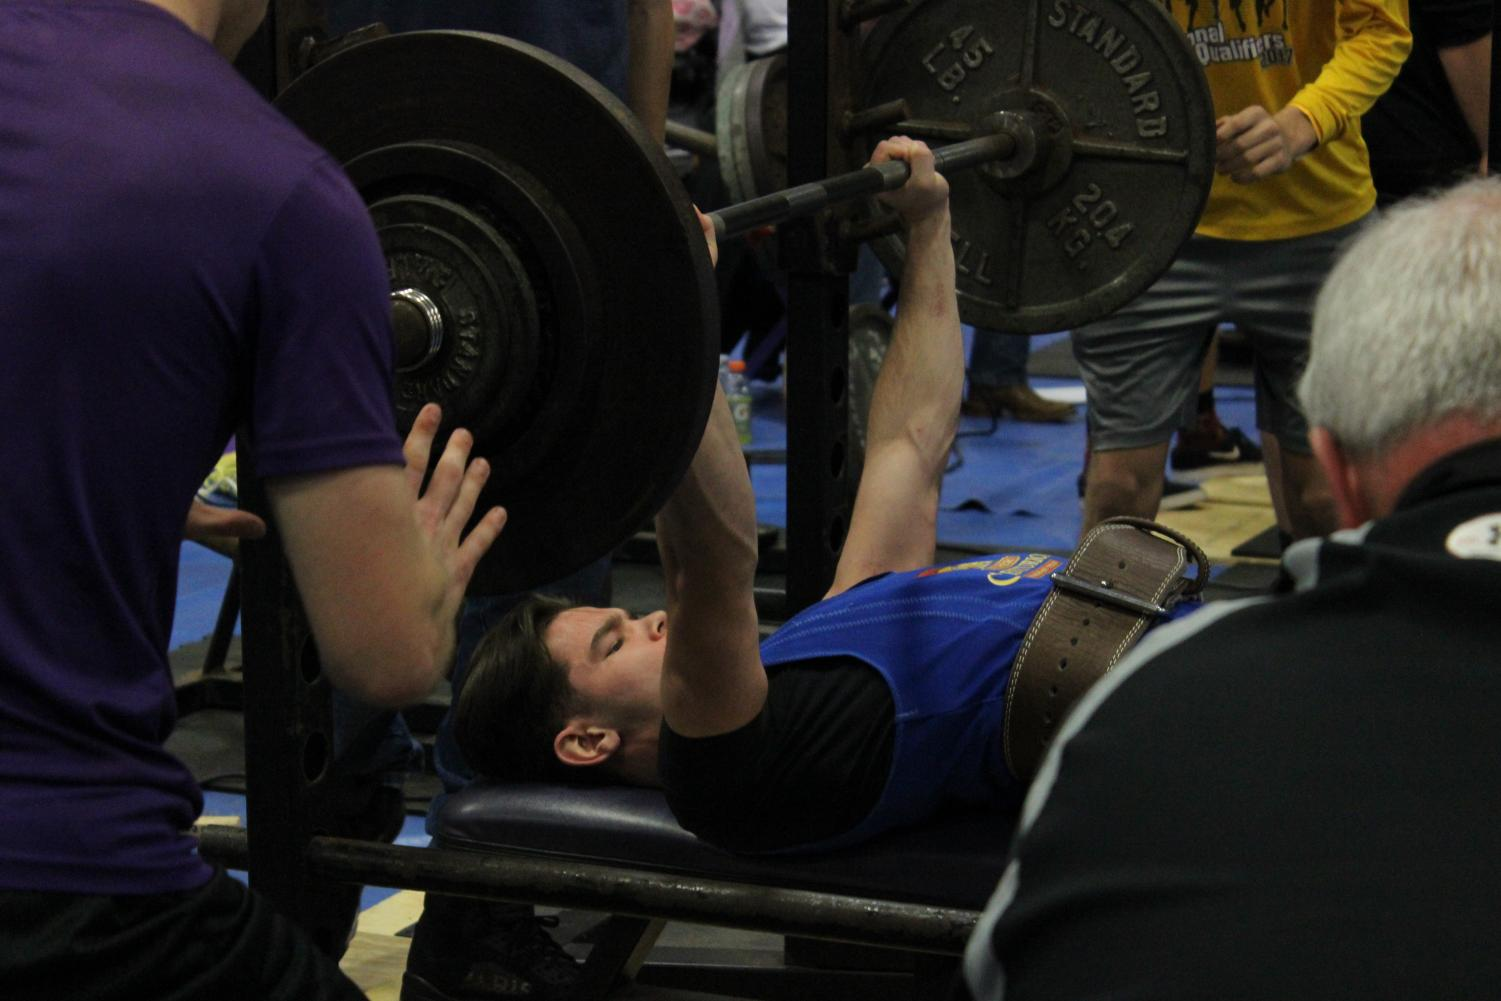 %22When+the+weight+pushes+you%2C+push+back+at+it.%22+-+Logan+Pasderetz%2C+12